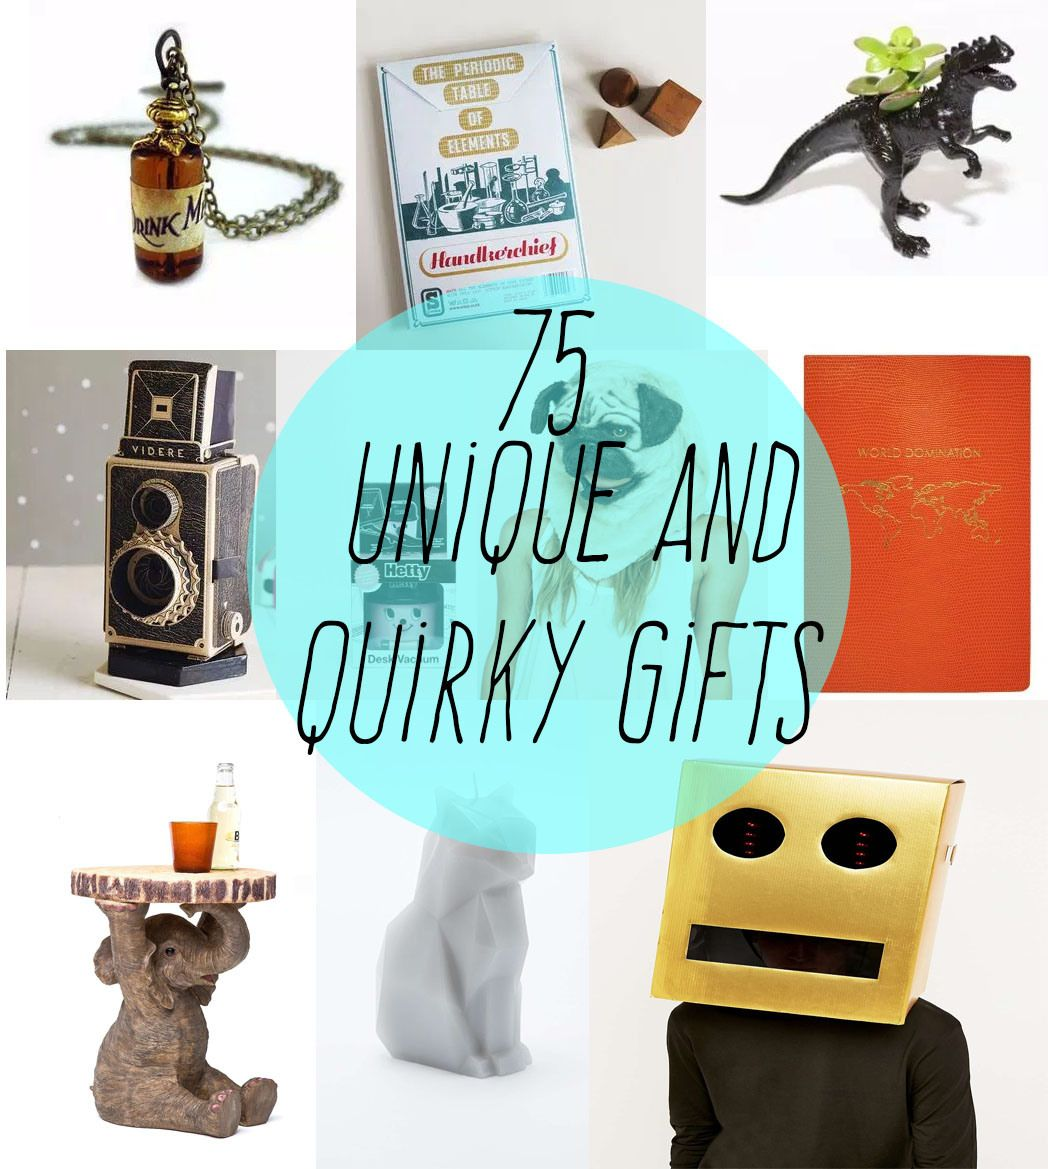 75 Unique And Quirky Gift Ideas Any Odd Person Will